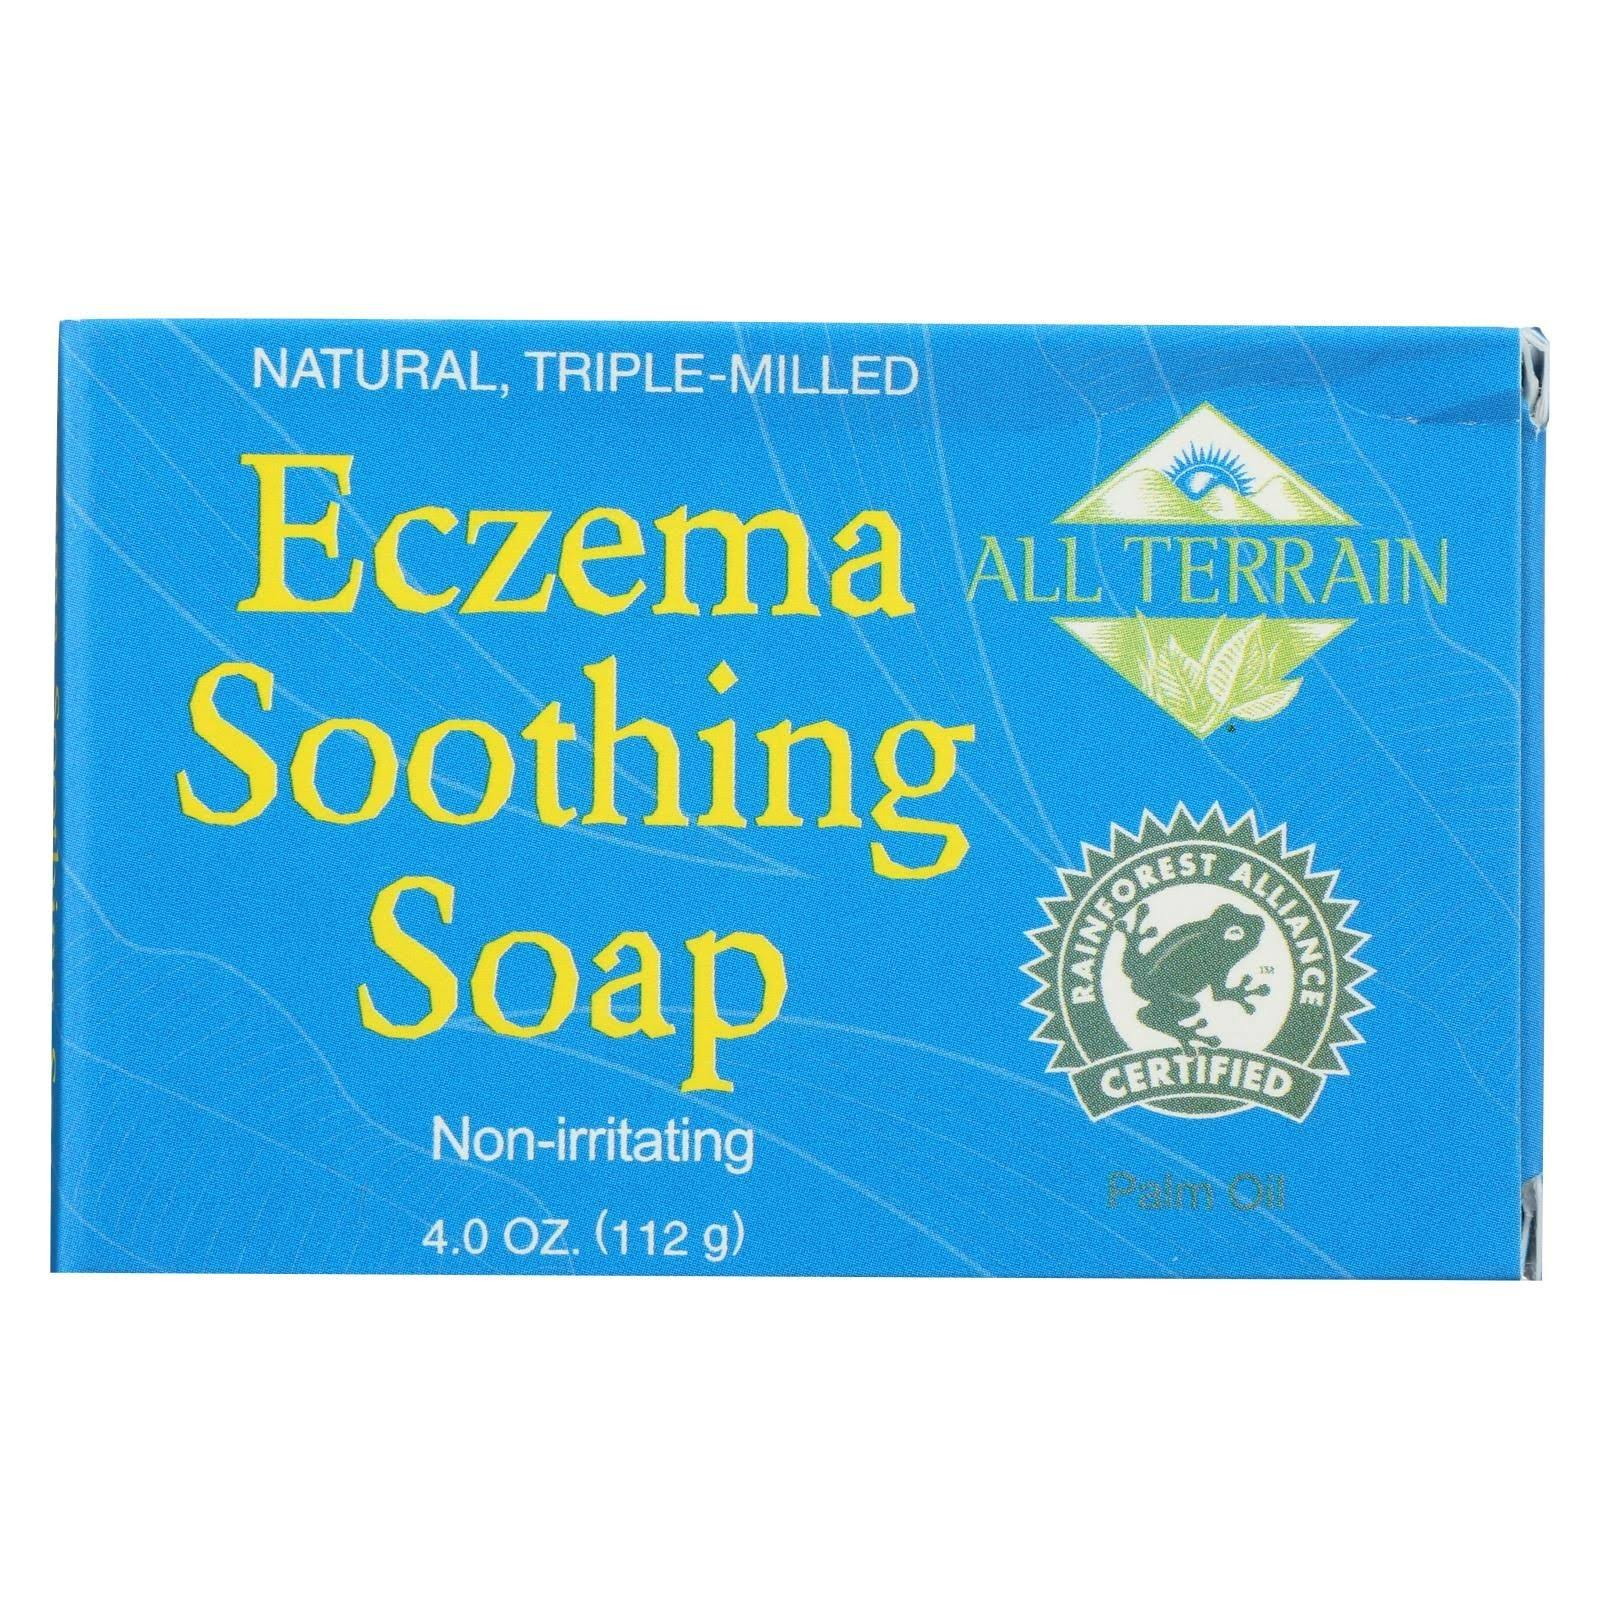 All Terrain Eczema Soothing Bar Soap - 4oz